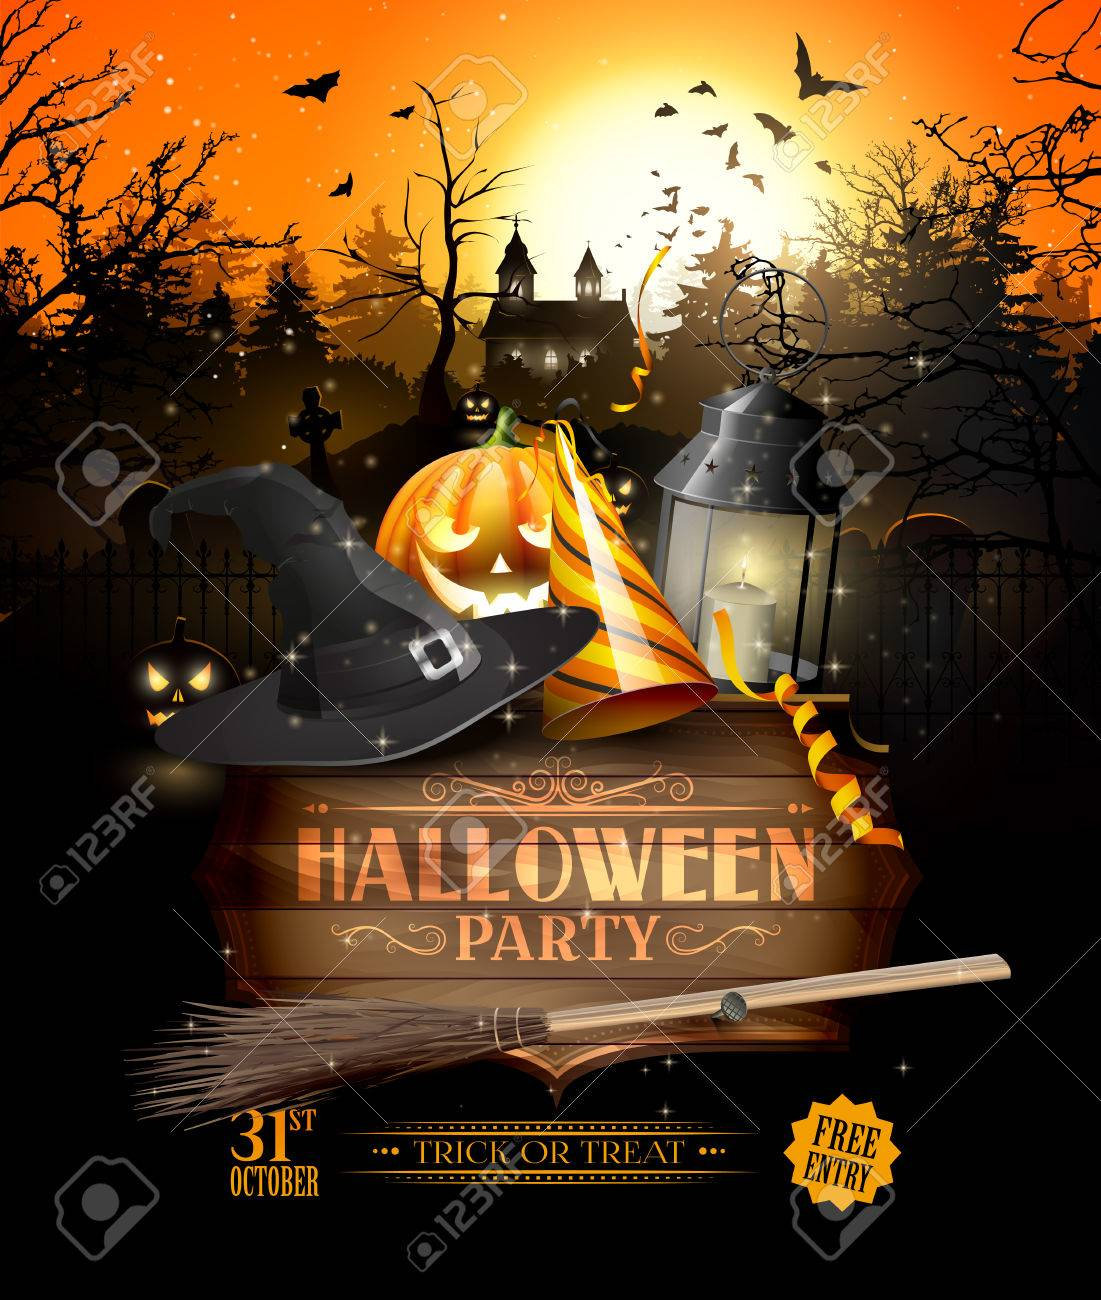 Modern Halloween Party Flyer With Black Lantern, Lights And Wooden ...